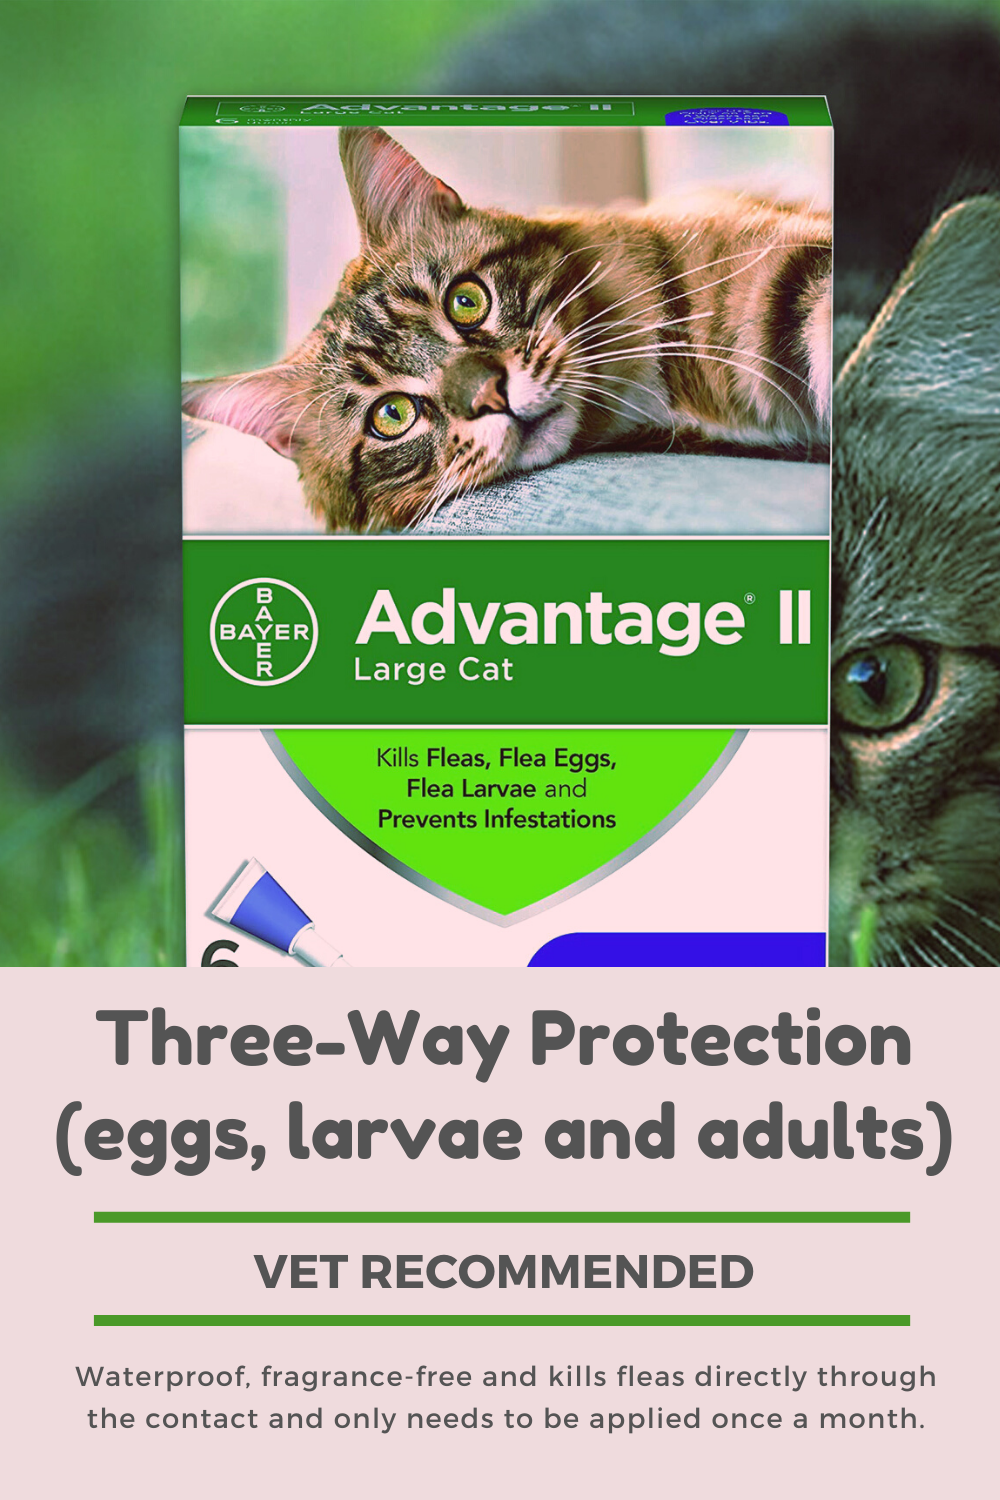 Best Flea Medicine For Cats In 2020 Flea Medicine For Cats Cat Medicine Cat Fleas